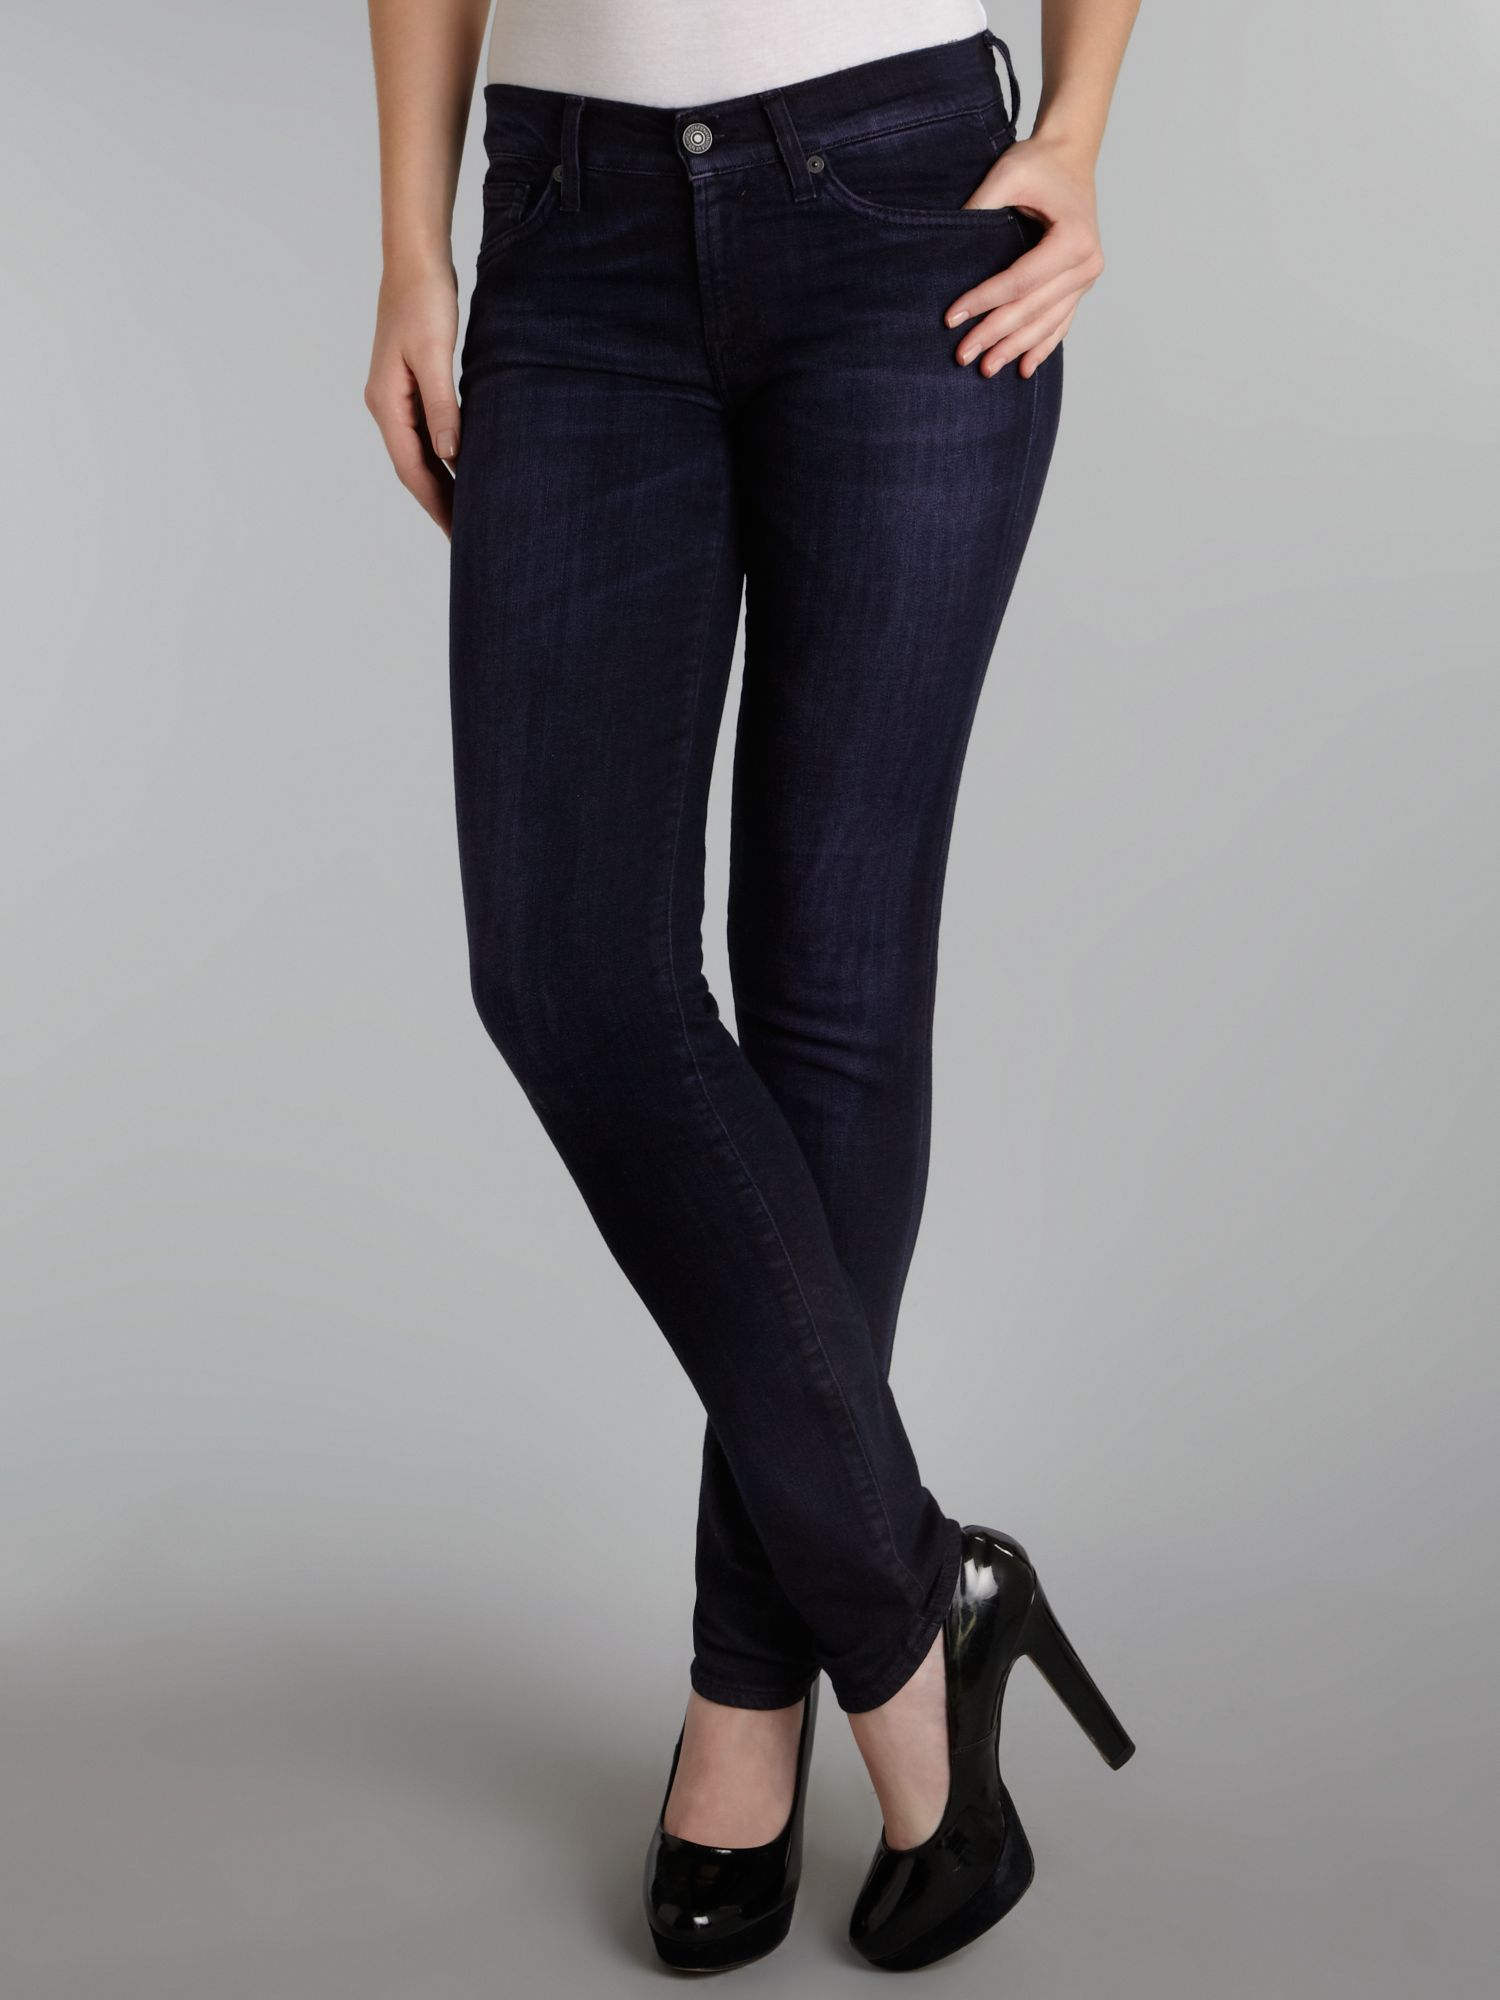 Gwenevere skinny jeans in Shadow Purple